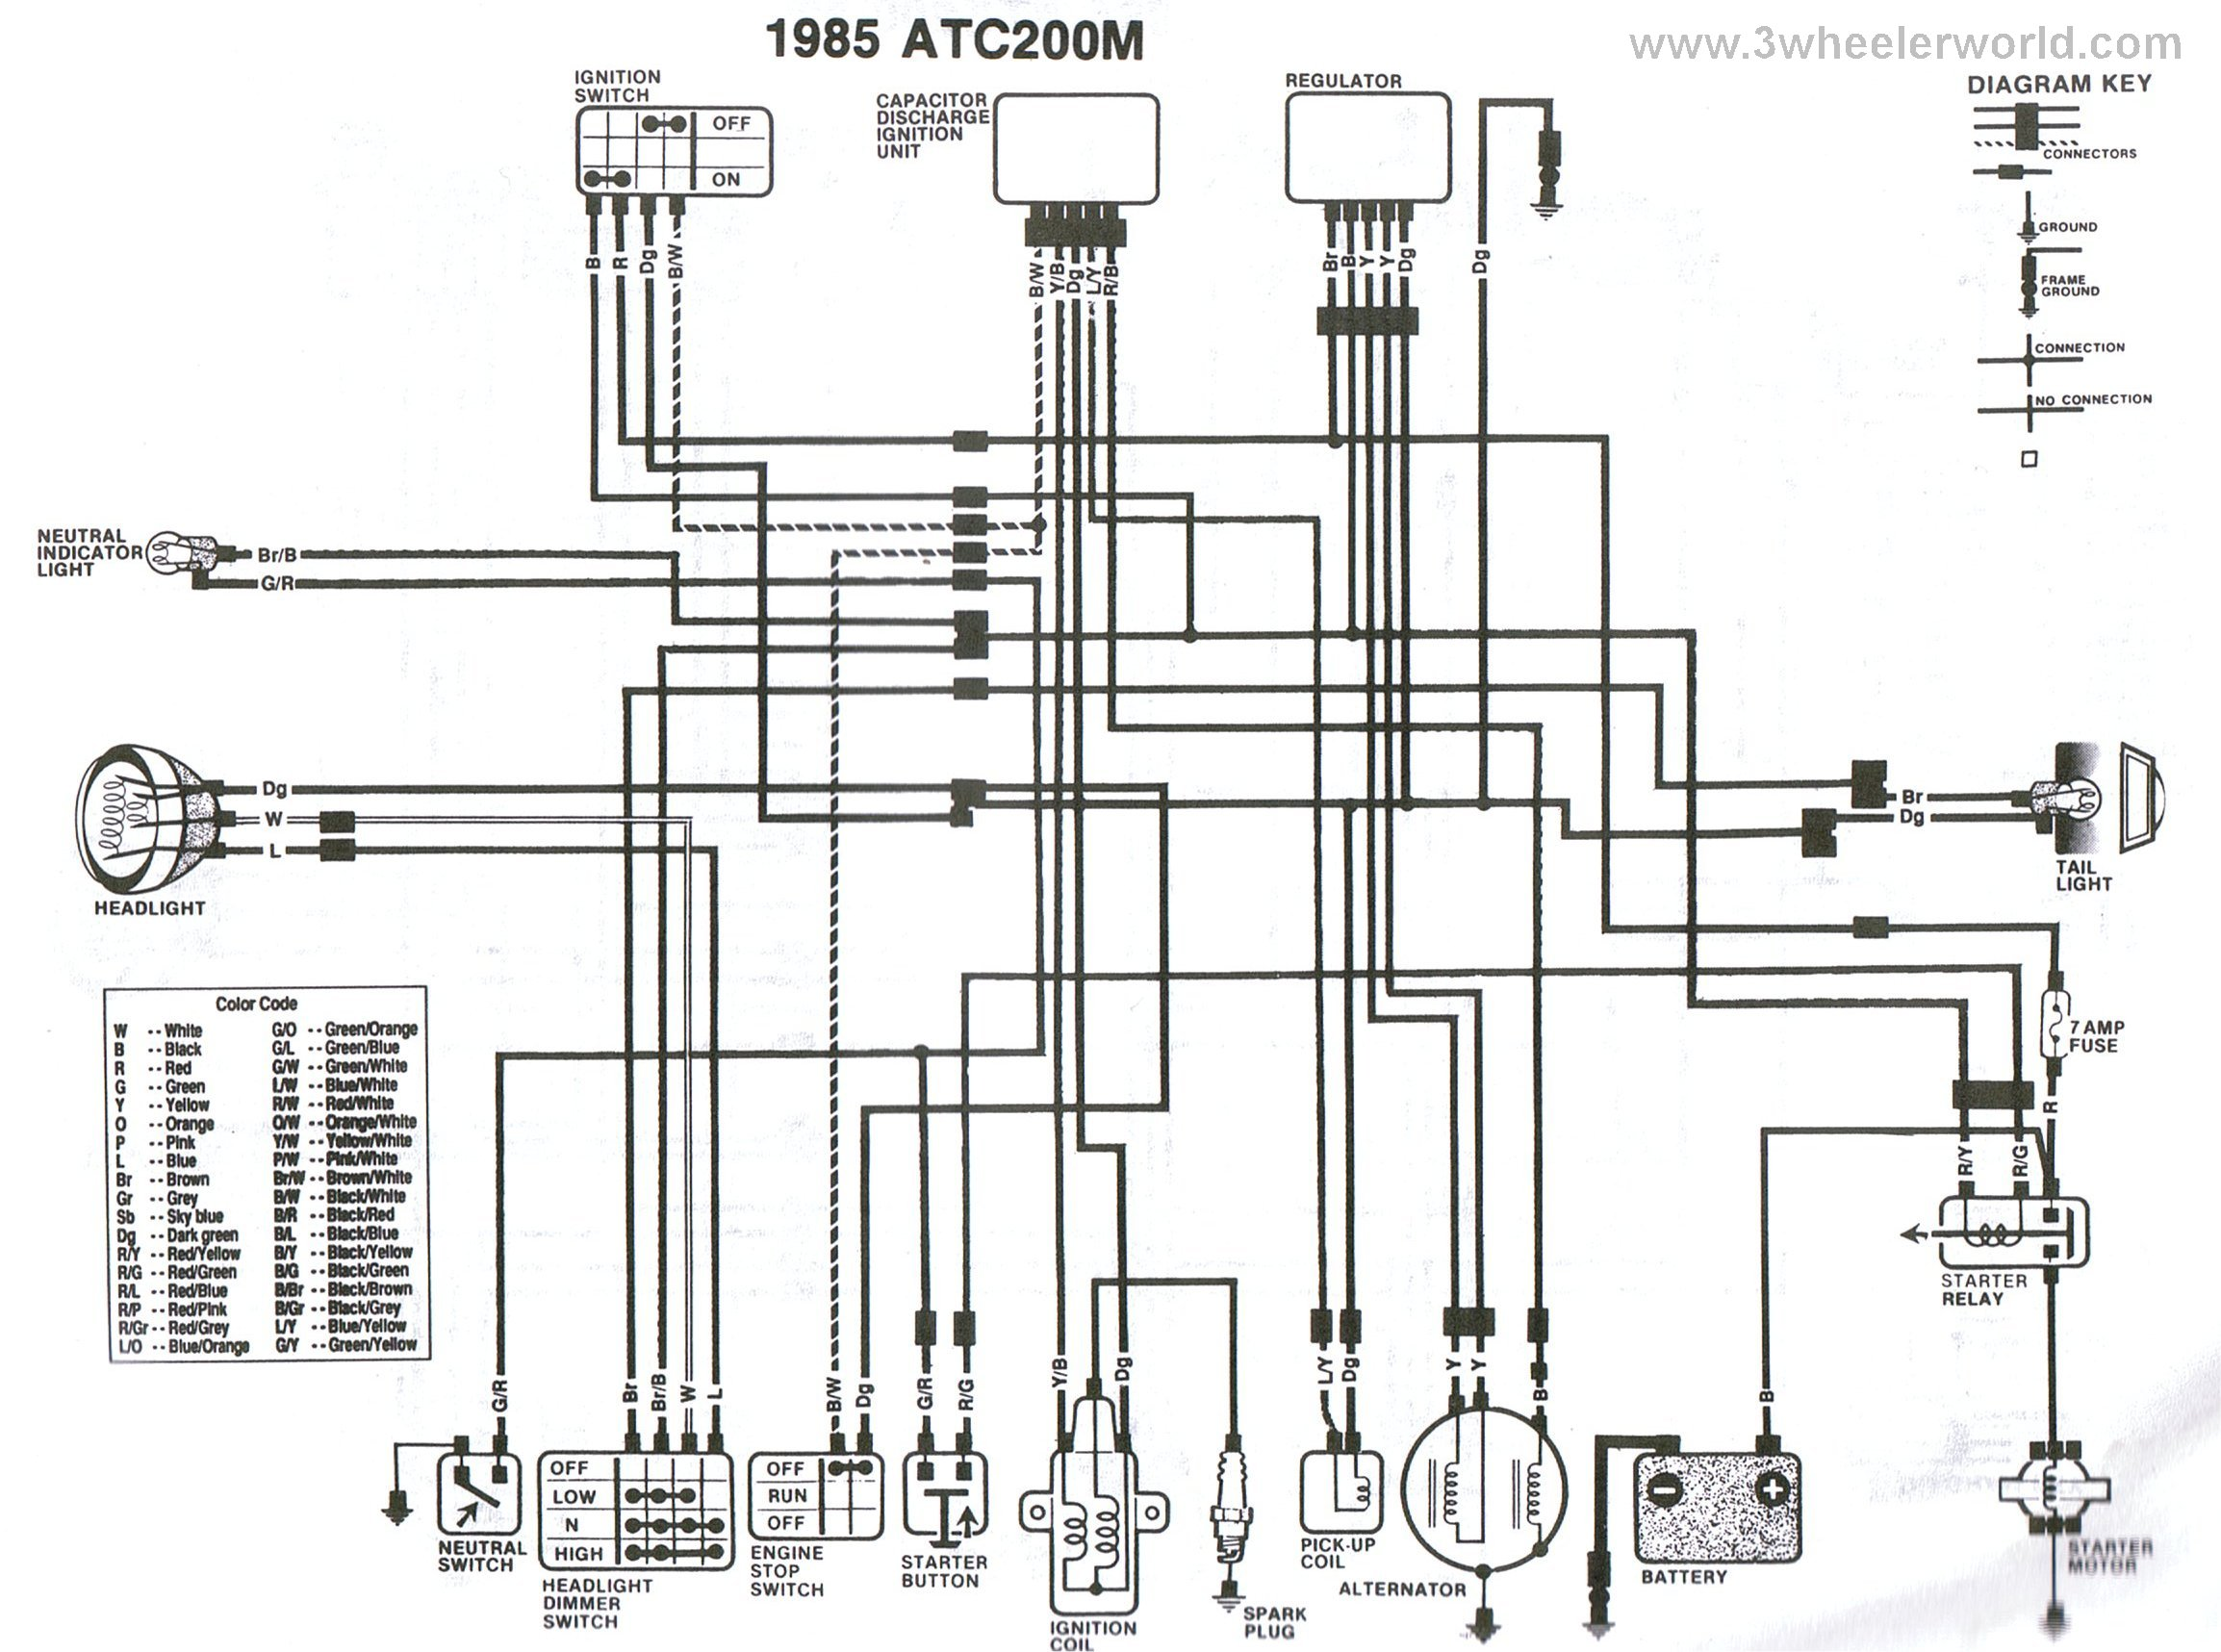 ATC200Mx85 3 wheeler world tech help honda wiring diagrams  at crackthecode.co